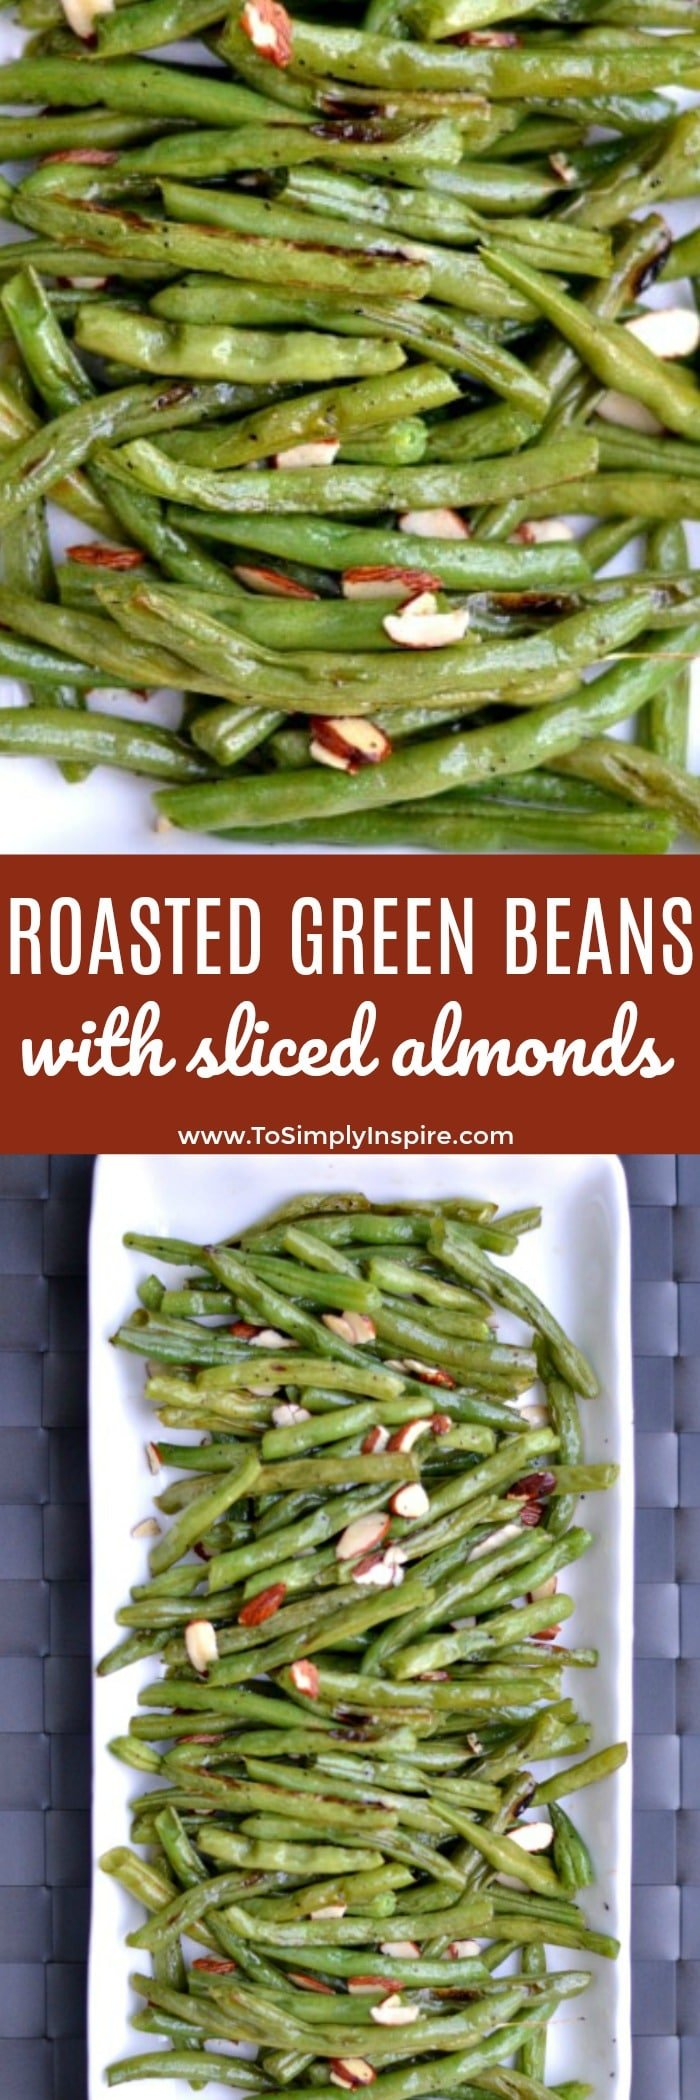 These roasted green beans are so simple and delicious with added sliced almonds. Add them to any meal as a limitless healthy side.